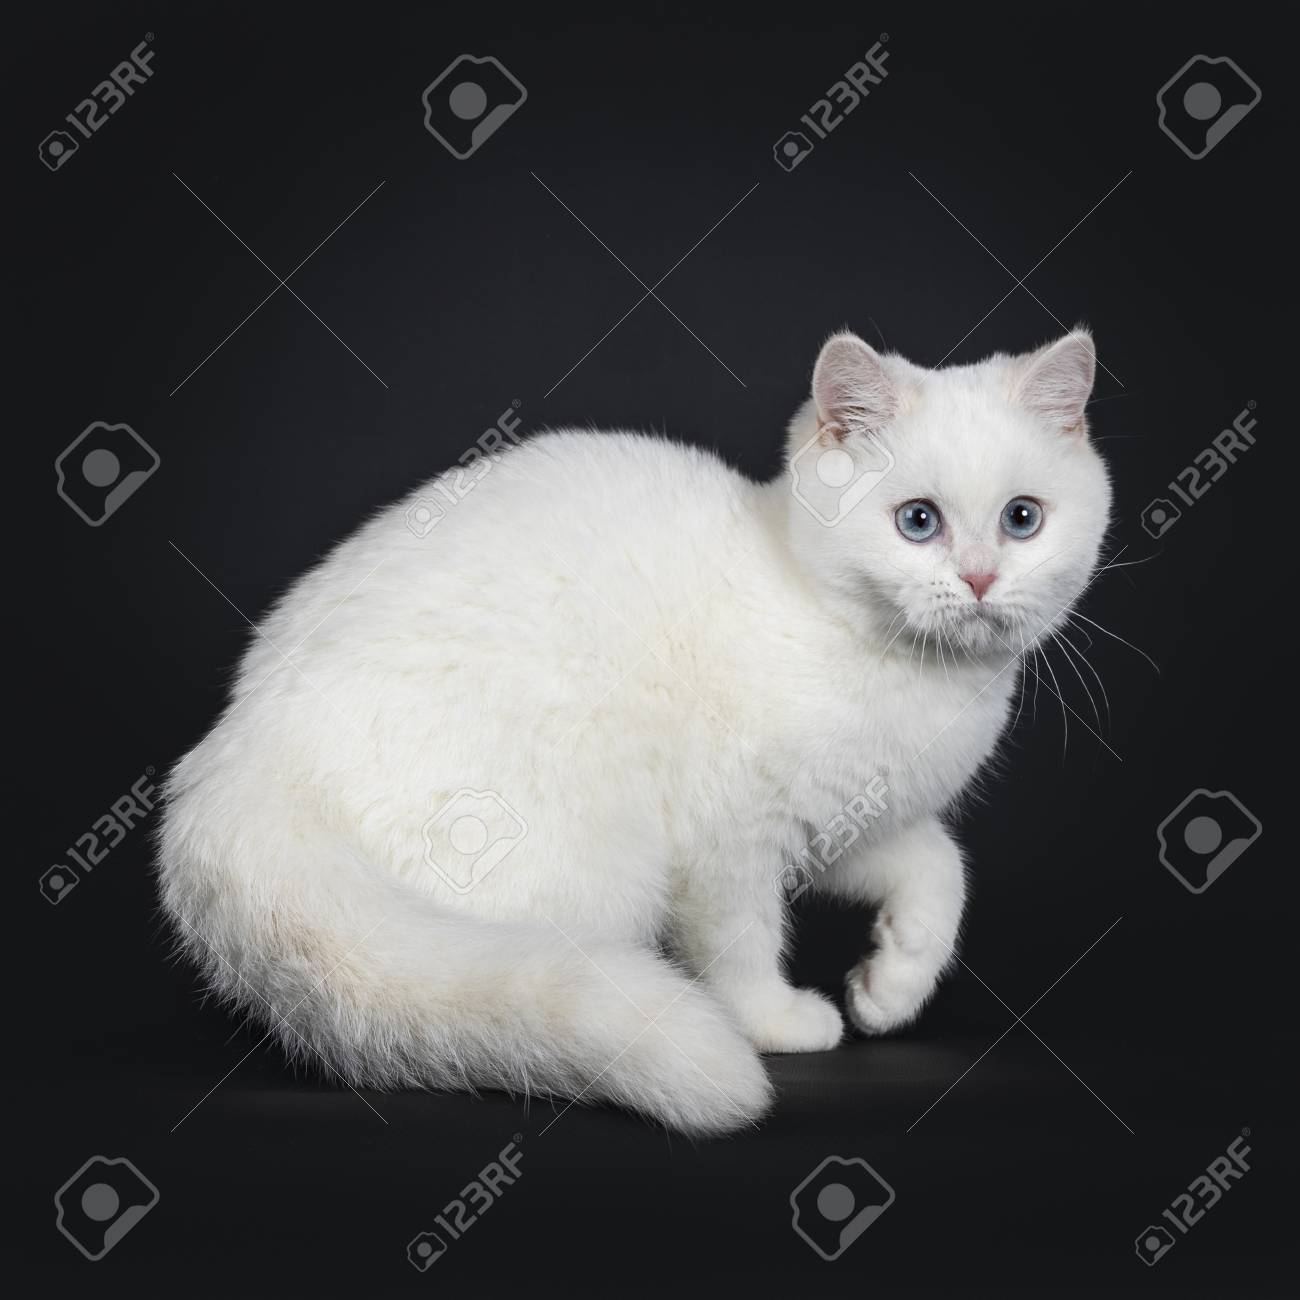 Cute Red Silver Shaded Cameo Point British Shorthair Standing Stock Photo Picture And Royalty Free Image Image 115690655